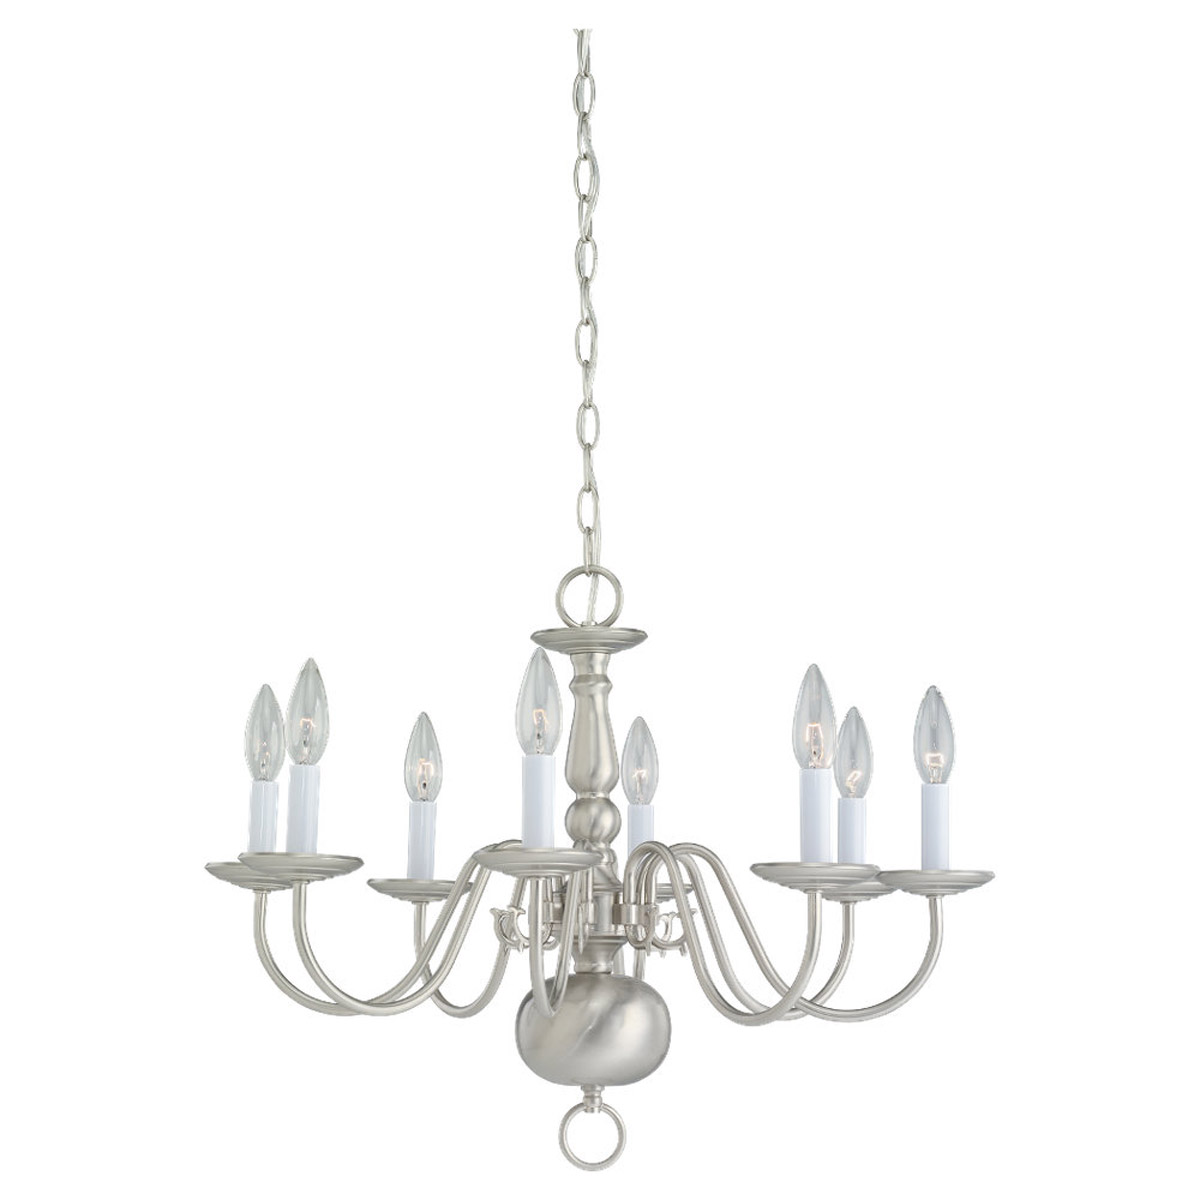 Sea Gull Lighting Traditional 8 Light Chandelier in Brushed Nickel 3412-962